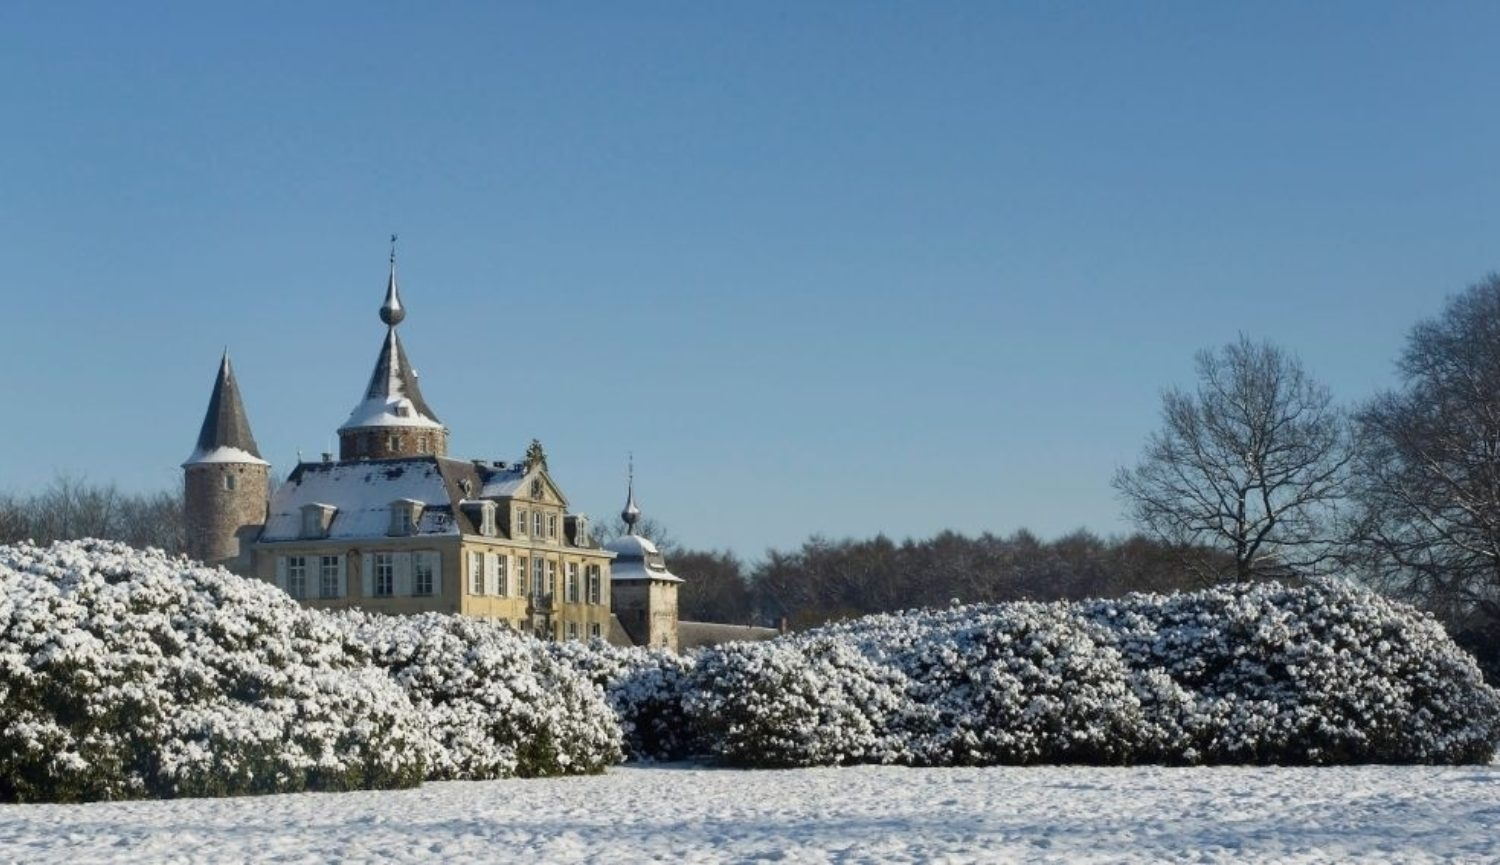 The snow-covered park in winter on the grounds of the Castle of 's-Gravenwezel